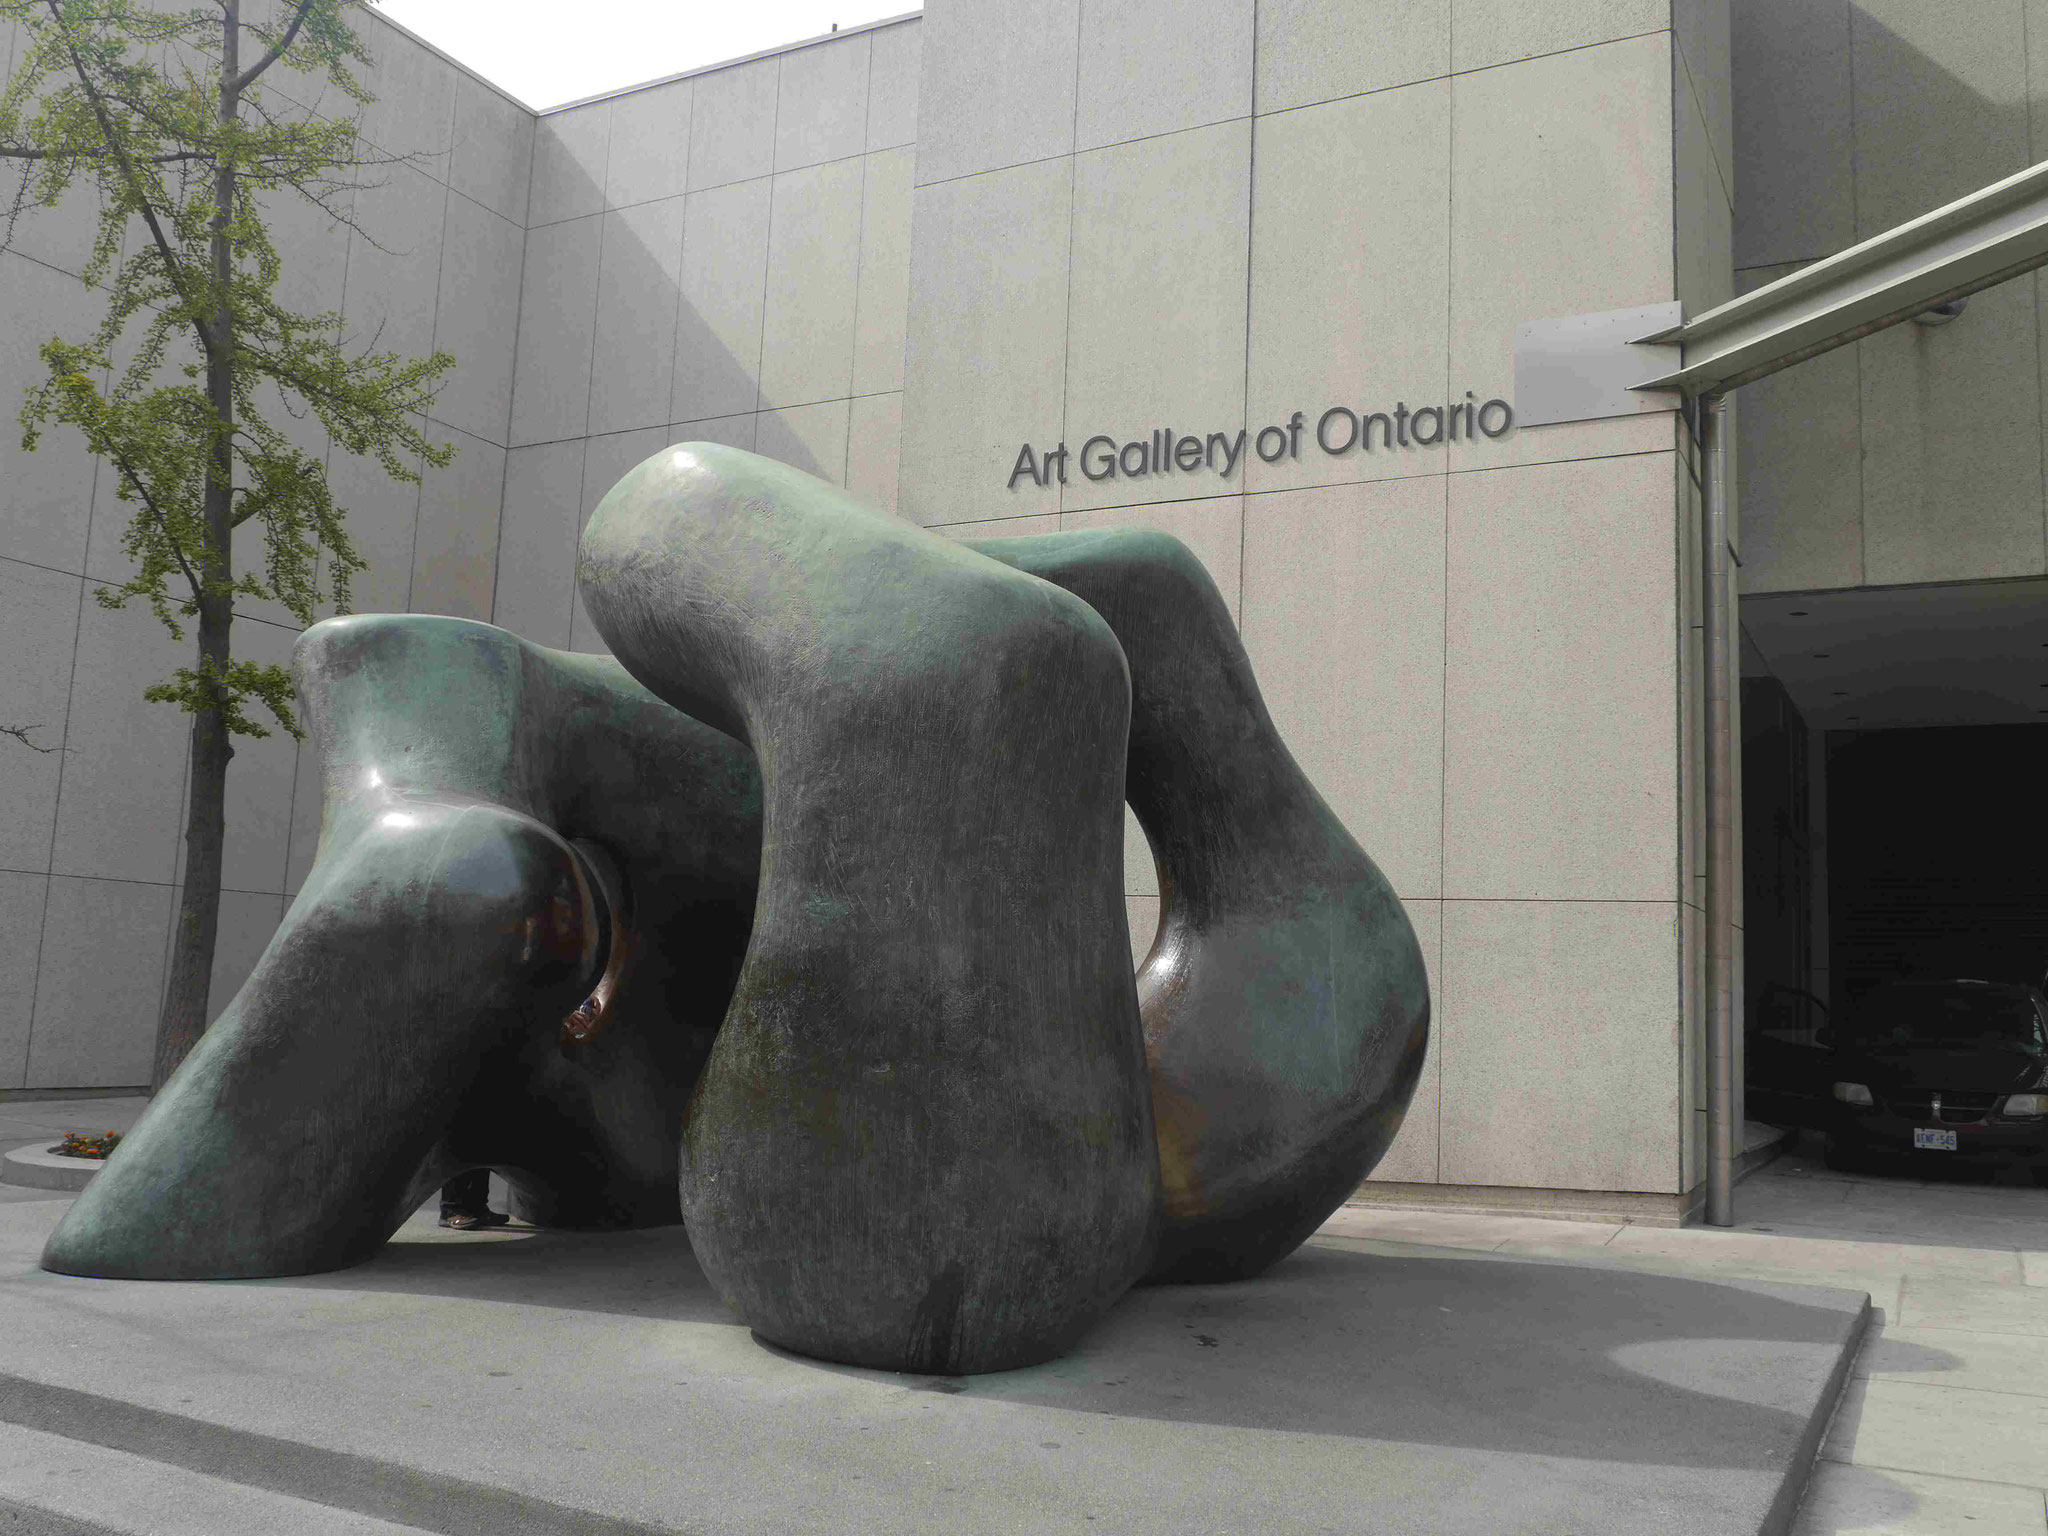 Henry Molore, Art Gallery of Ontario, Kanada